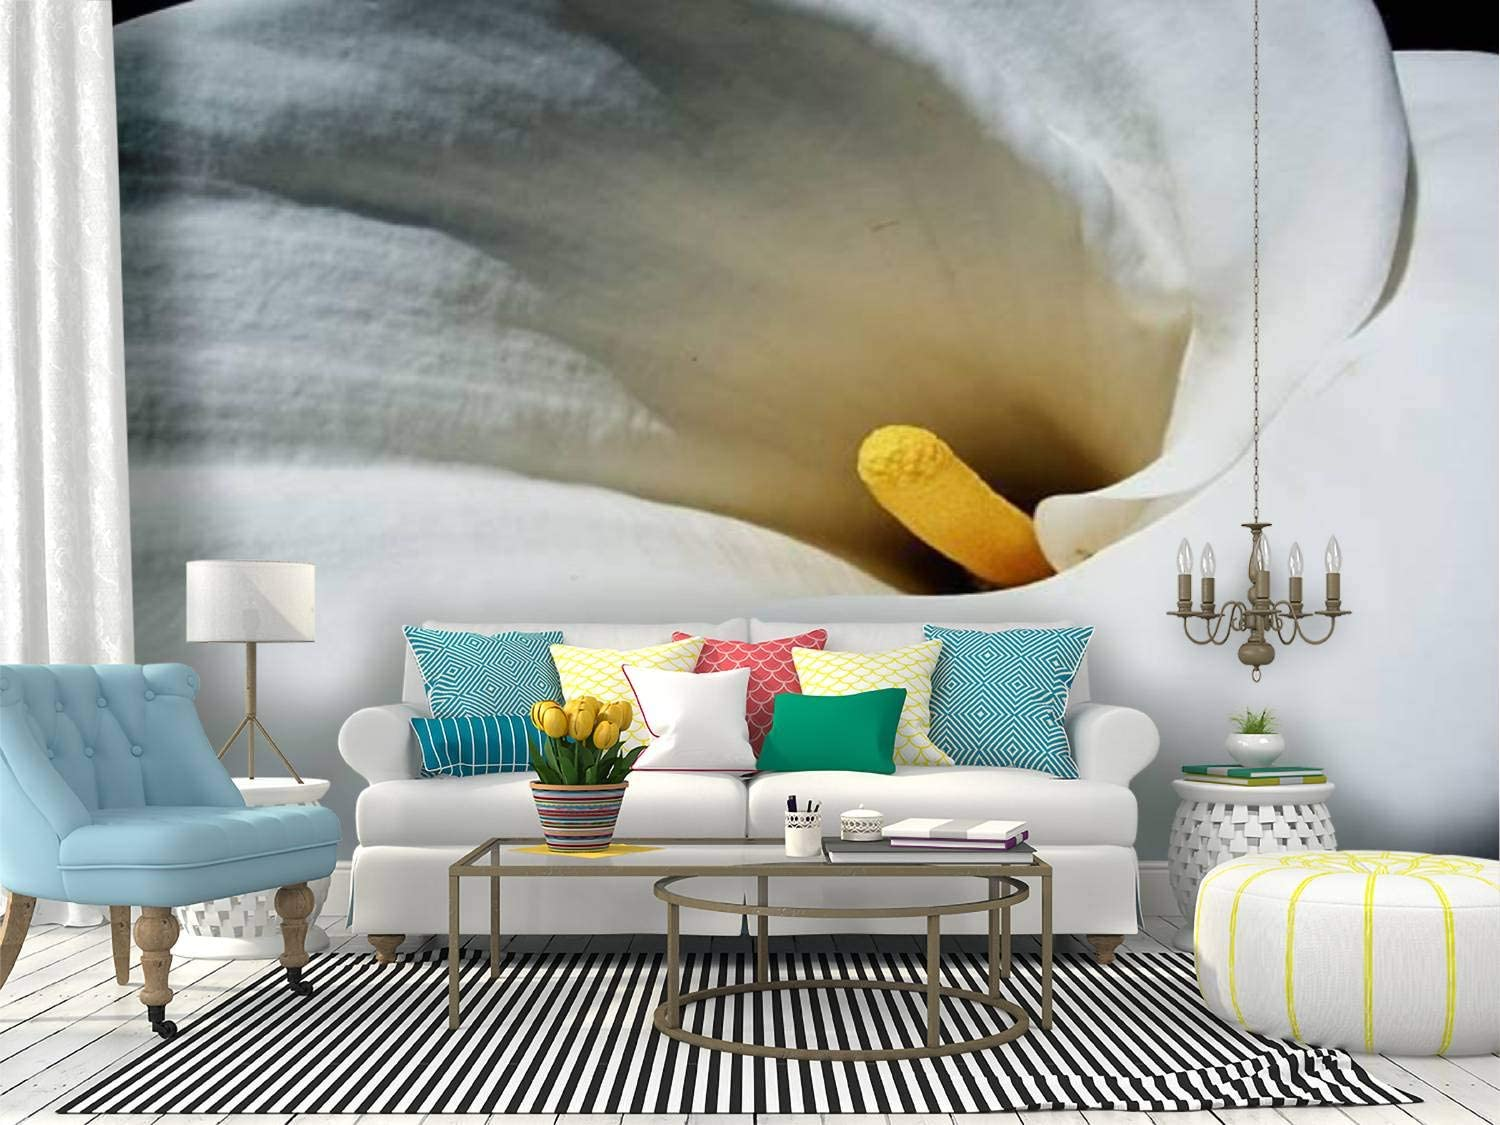 Amazon Com Wall Mural Calla Lily Flower White Yellow Abstract New Orleans Style Stock Peel And Stick Wallpaper Self Adhesive Wallpaper Large Wall Sticker Removable Vinyl Film Roll Shelf Paper Home Decor Home